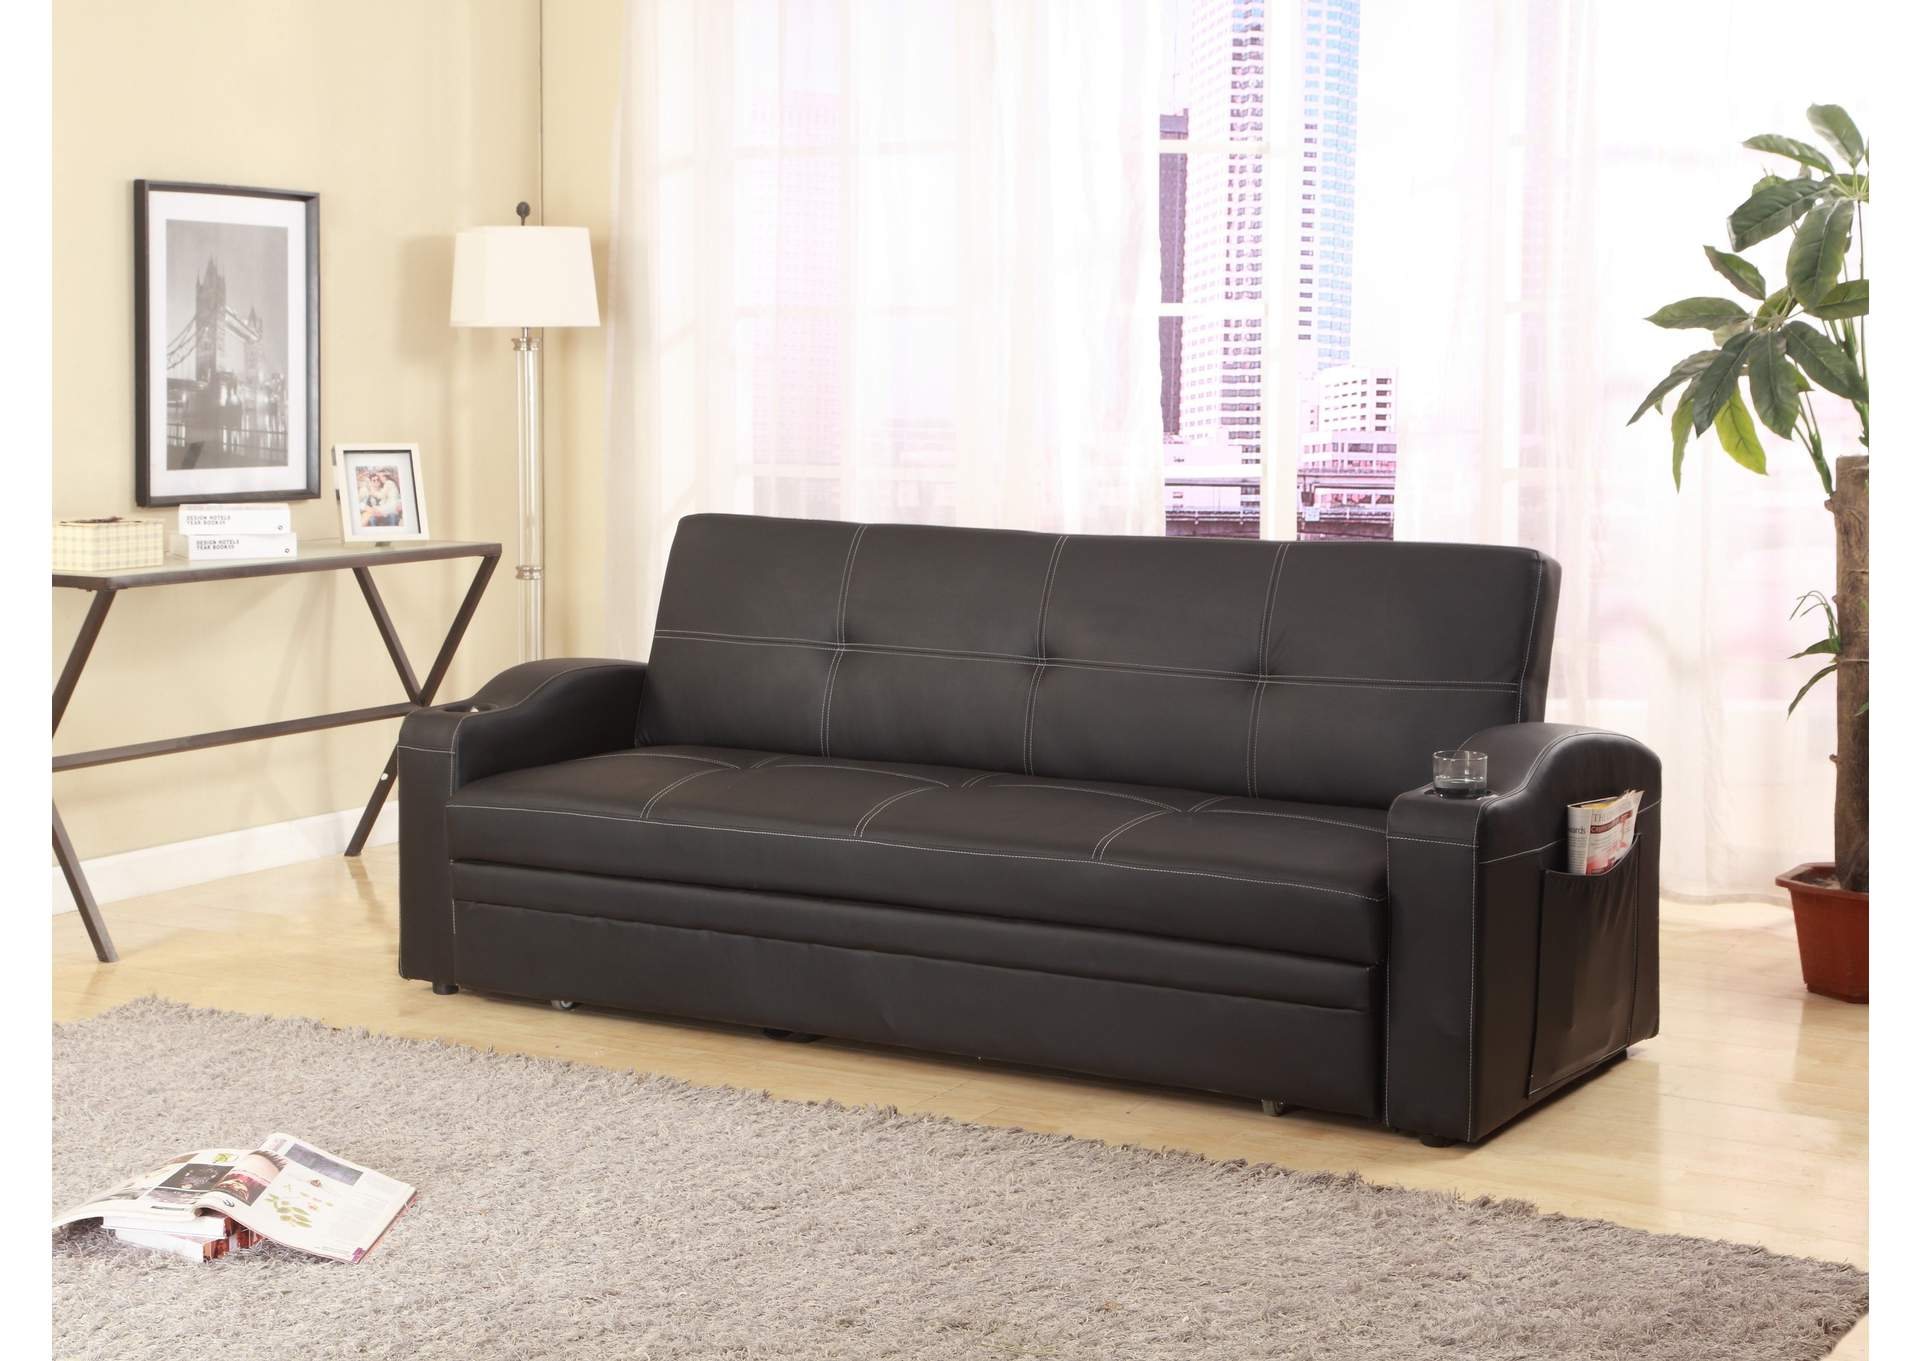 Easton Black Adjustable Sofa,Crown Mark